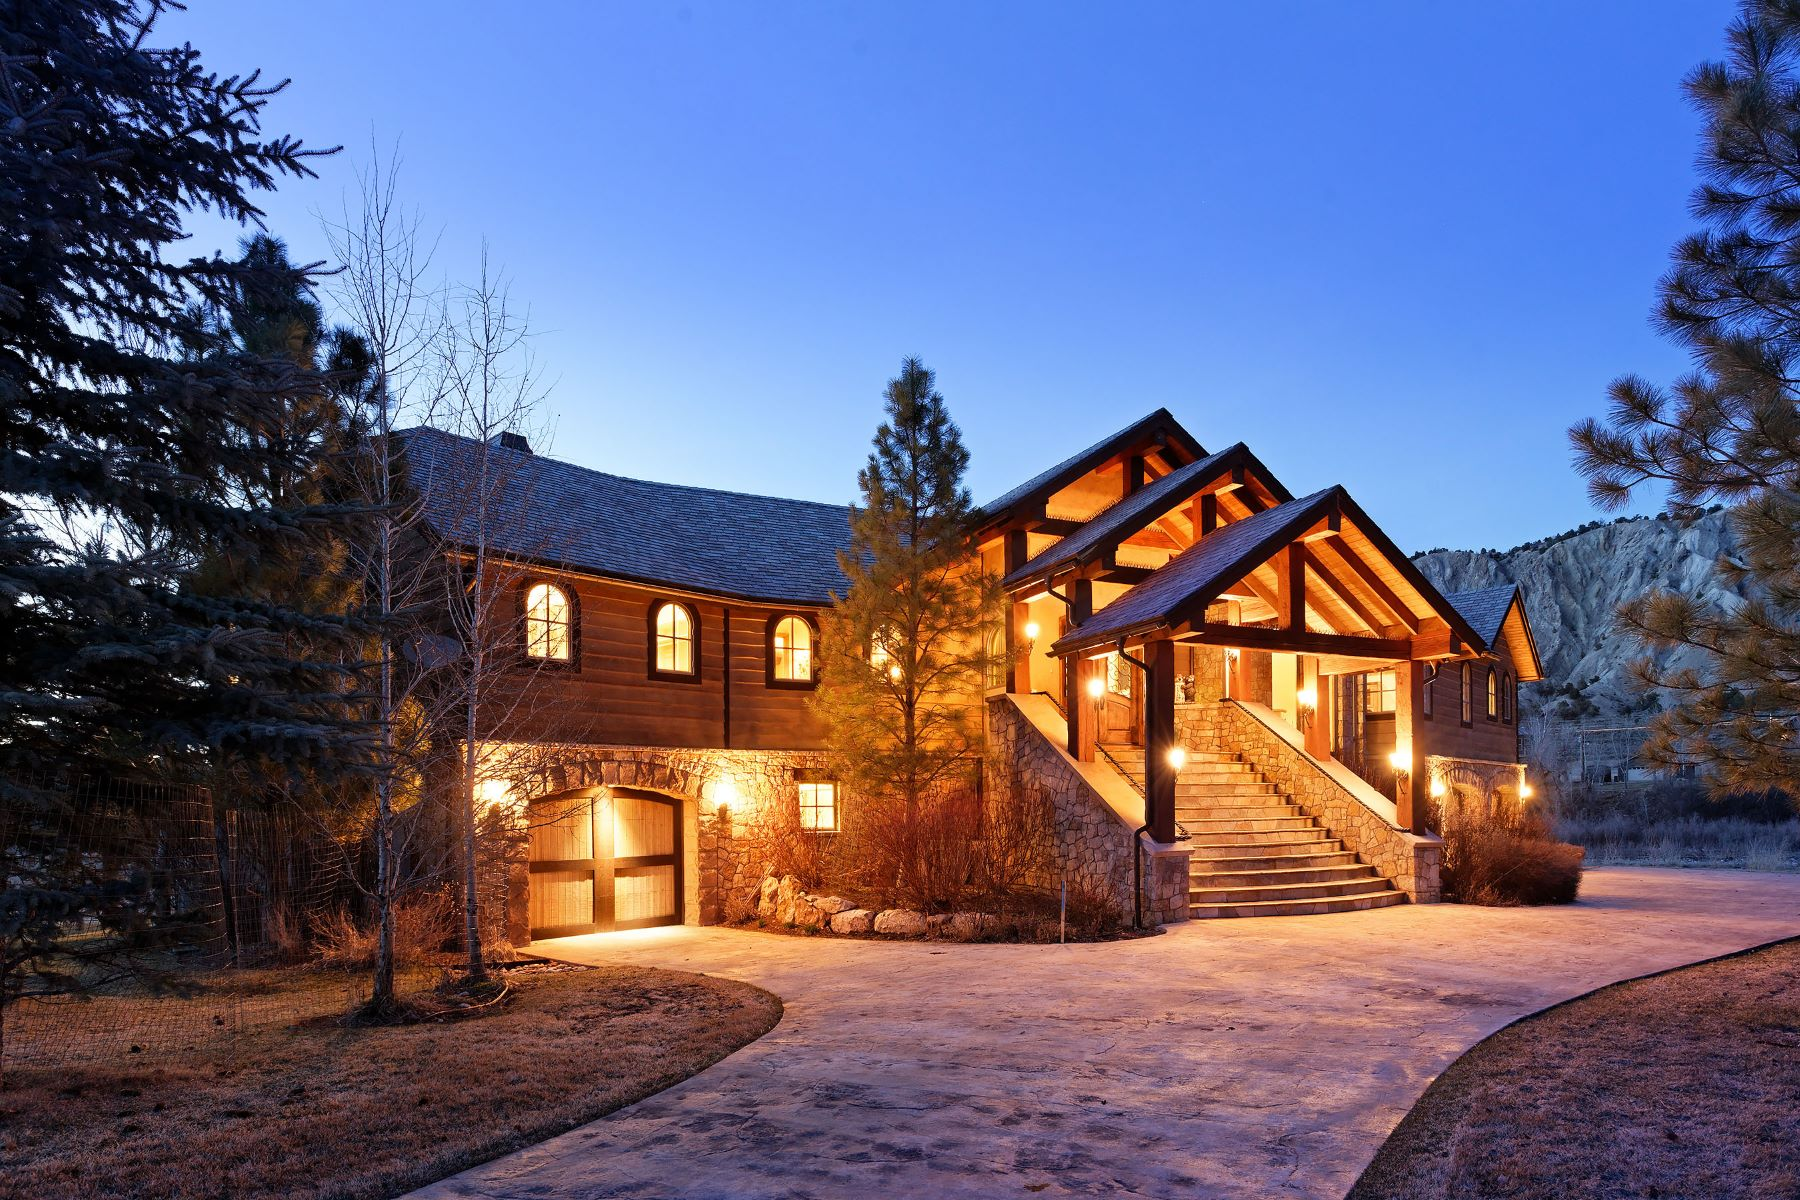 Maison unifamiliale pour l Vente à Aspen Glen Club Villas Home 160 River Glen Road Carbondale, Colorado, 81623 États-Unis